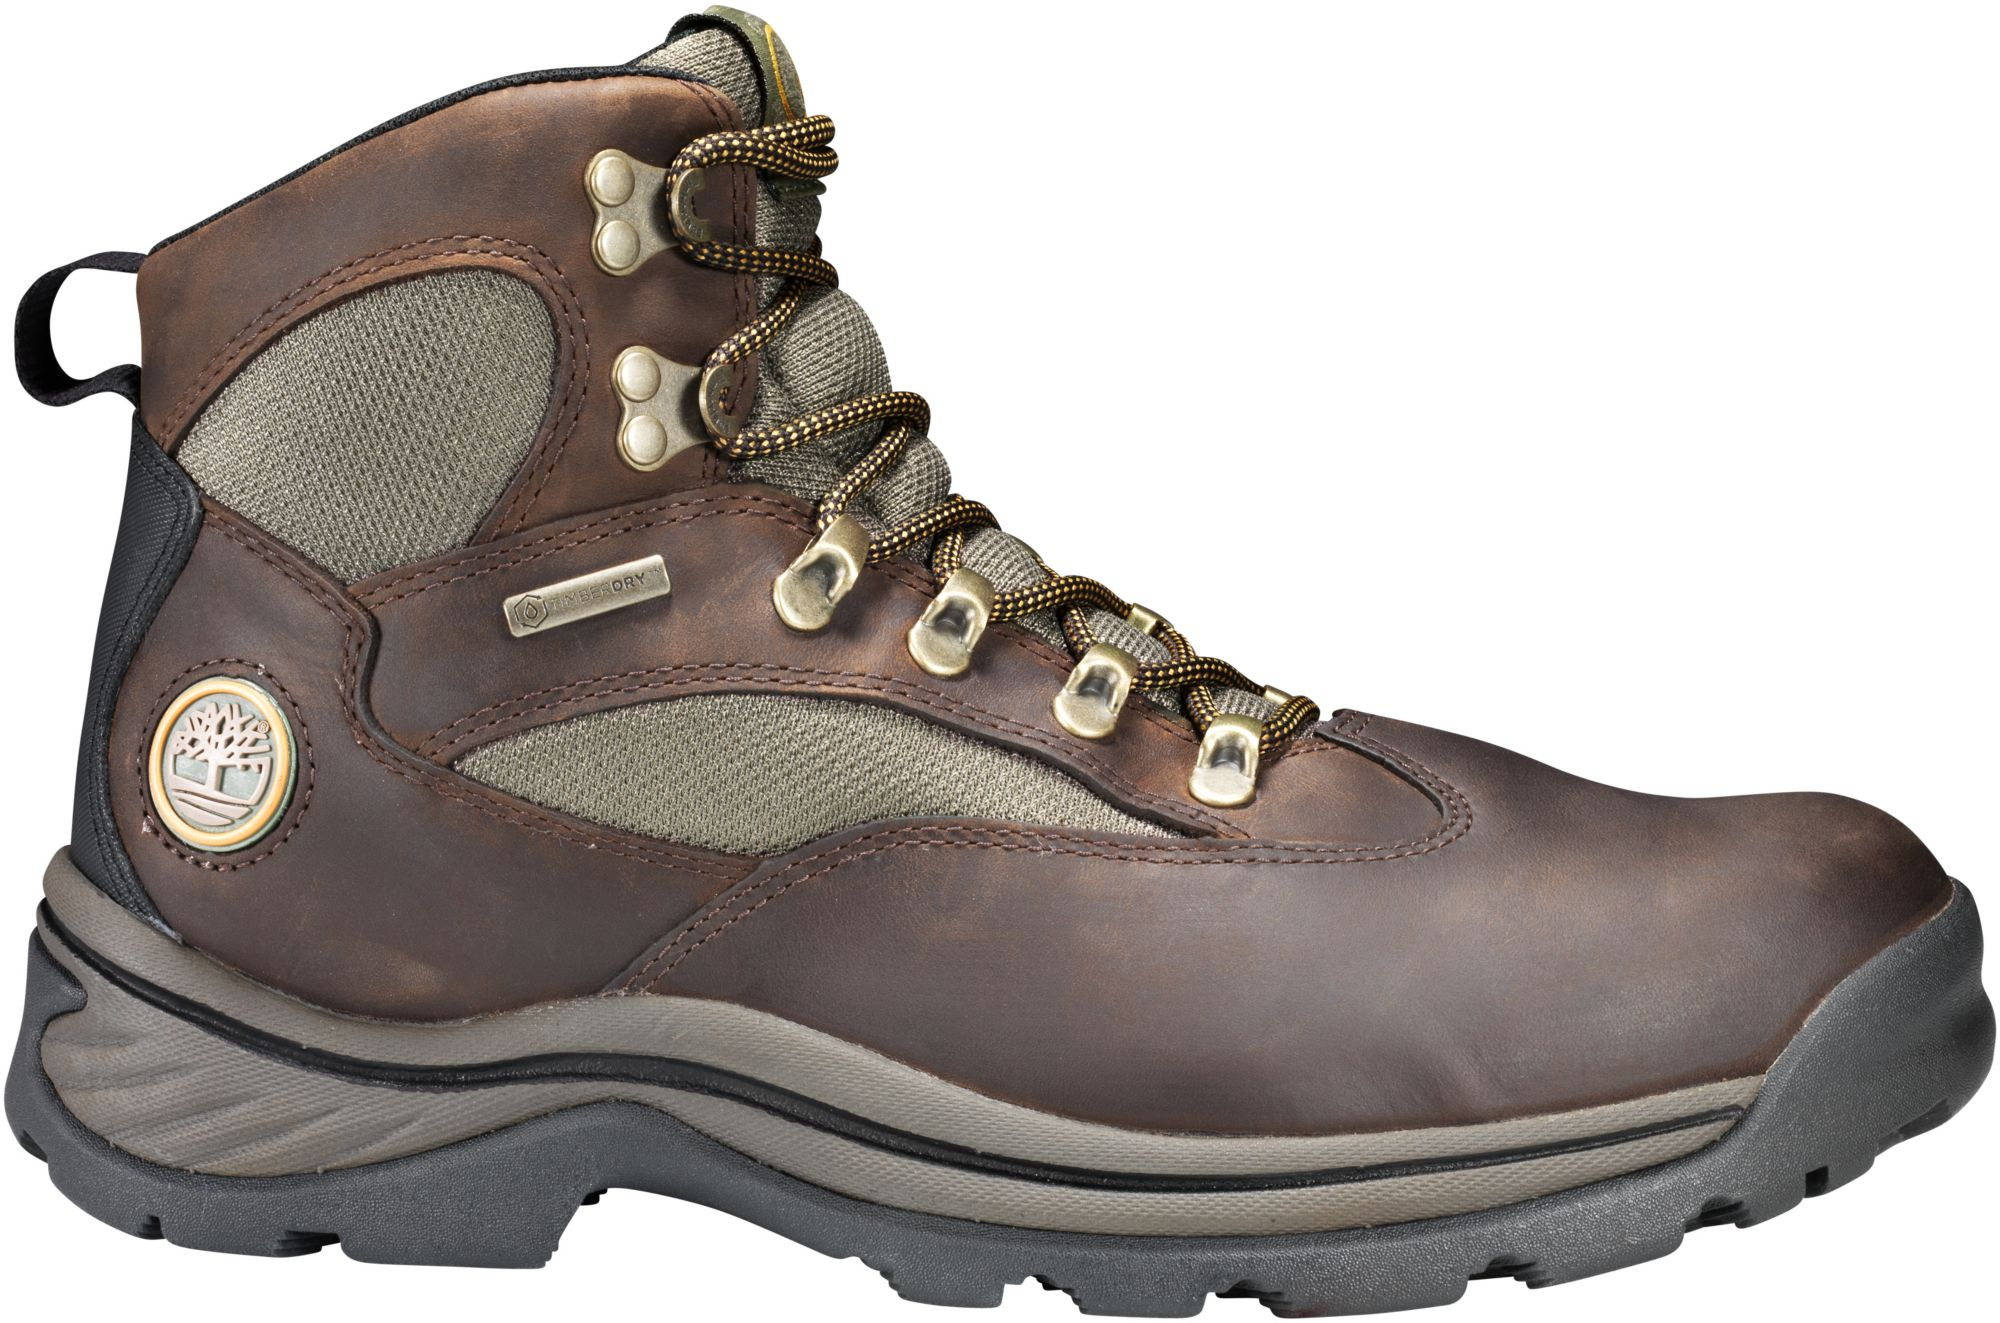 Timberland Men's Chocorua Trail Mid GORE-TEX Hiking Boots| DICK'S ...